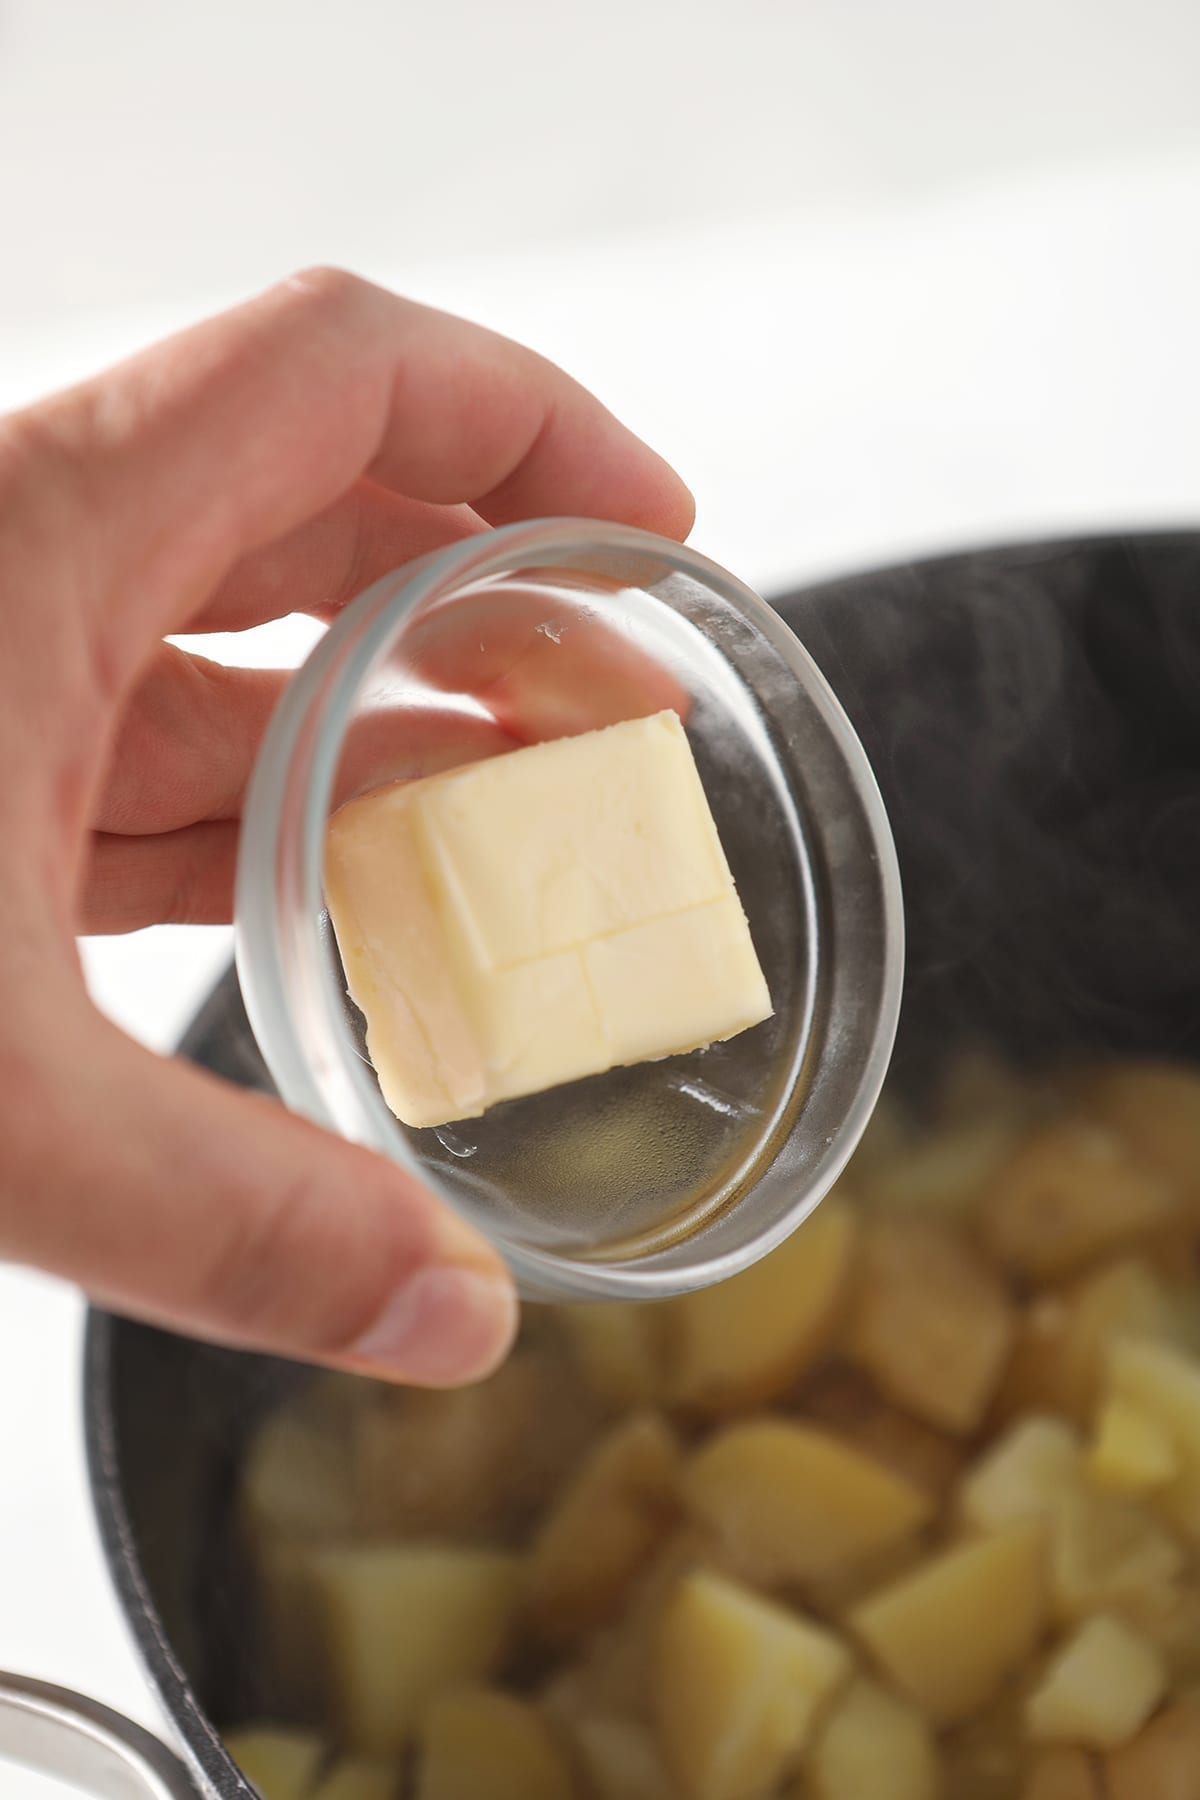 A bowl of softened butter is held over a pot holding boiled potatoes